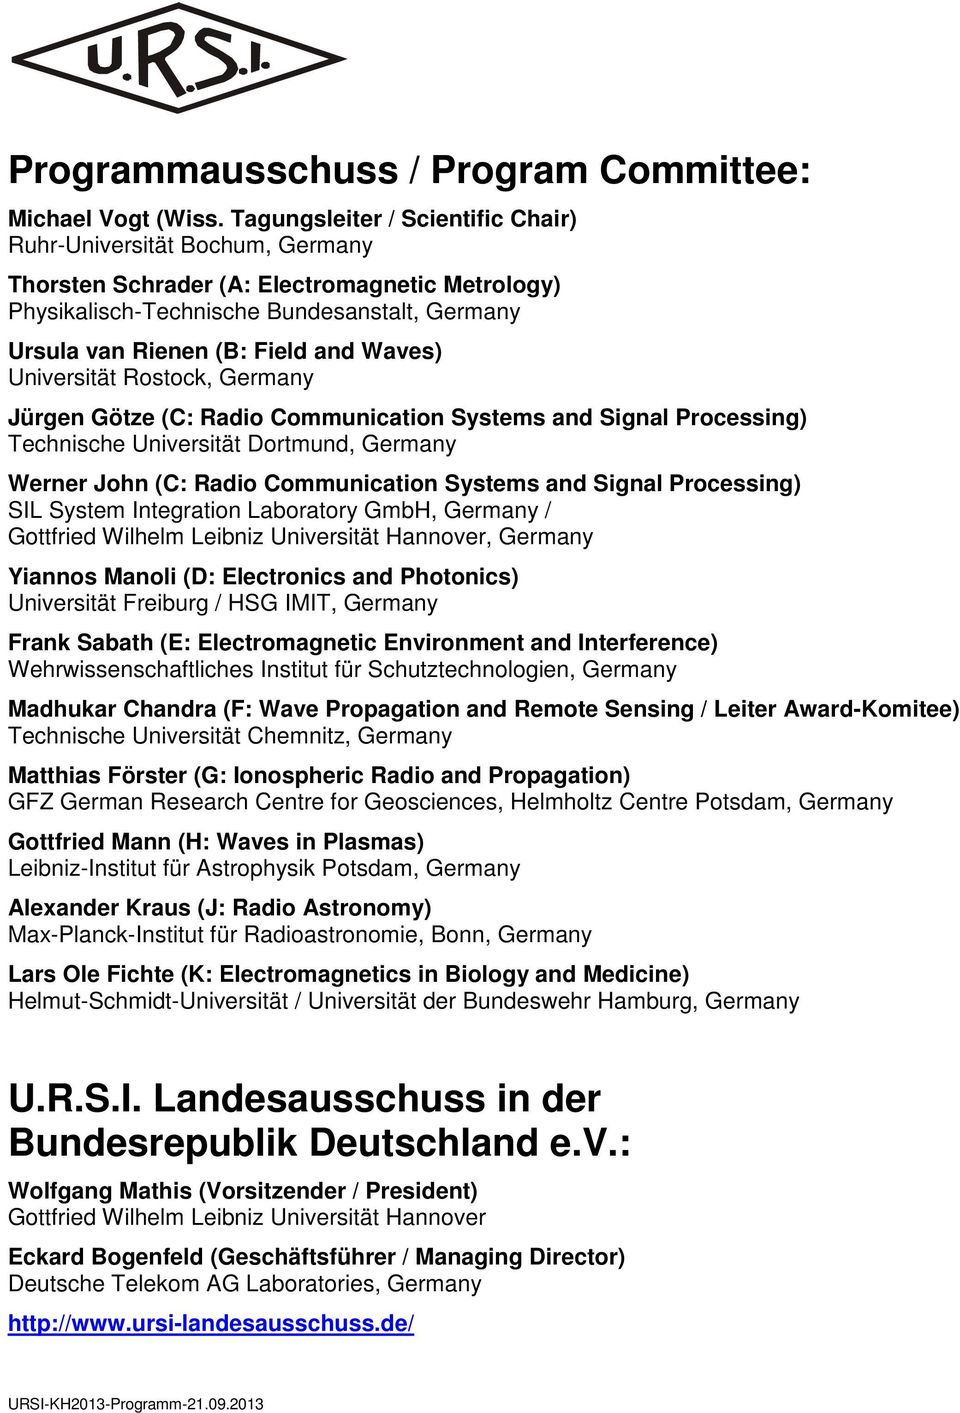 Waves) Universität Rostock, Germany Jürgen Götze (C: Radio Communication Systems and Signal Processing) Technische Universität Dortmund, Germany Werner John (C: Radio Communication Systems and Signal